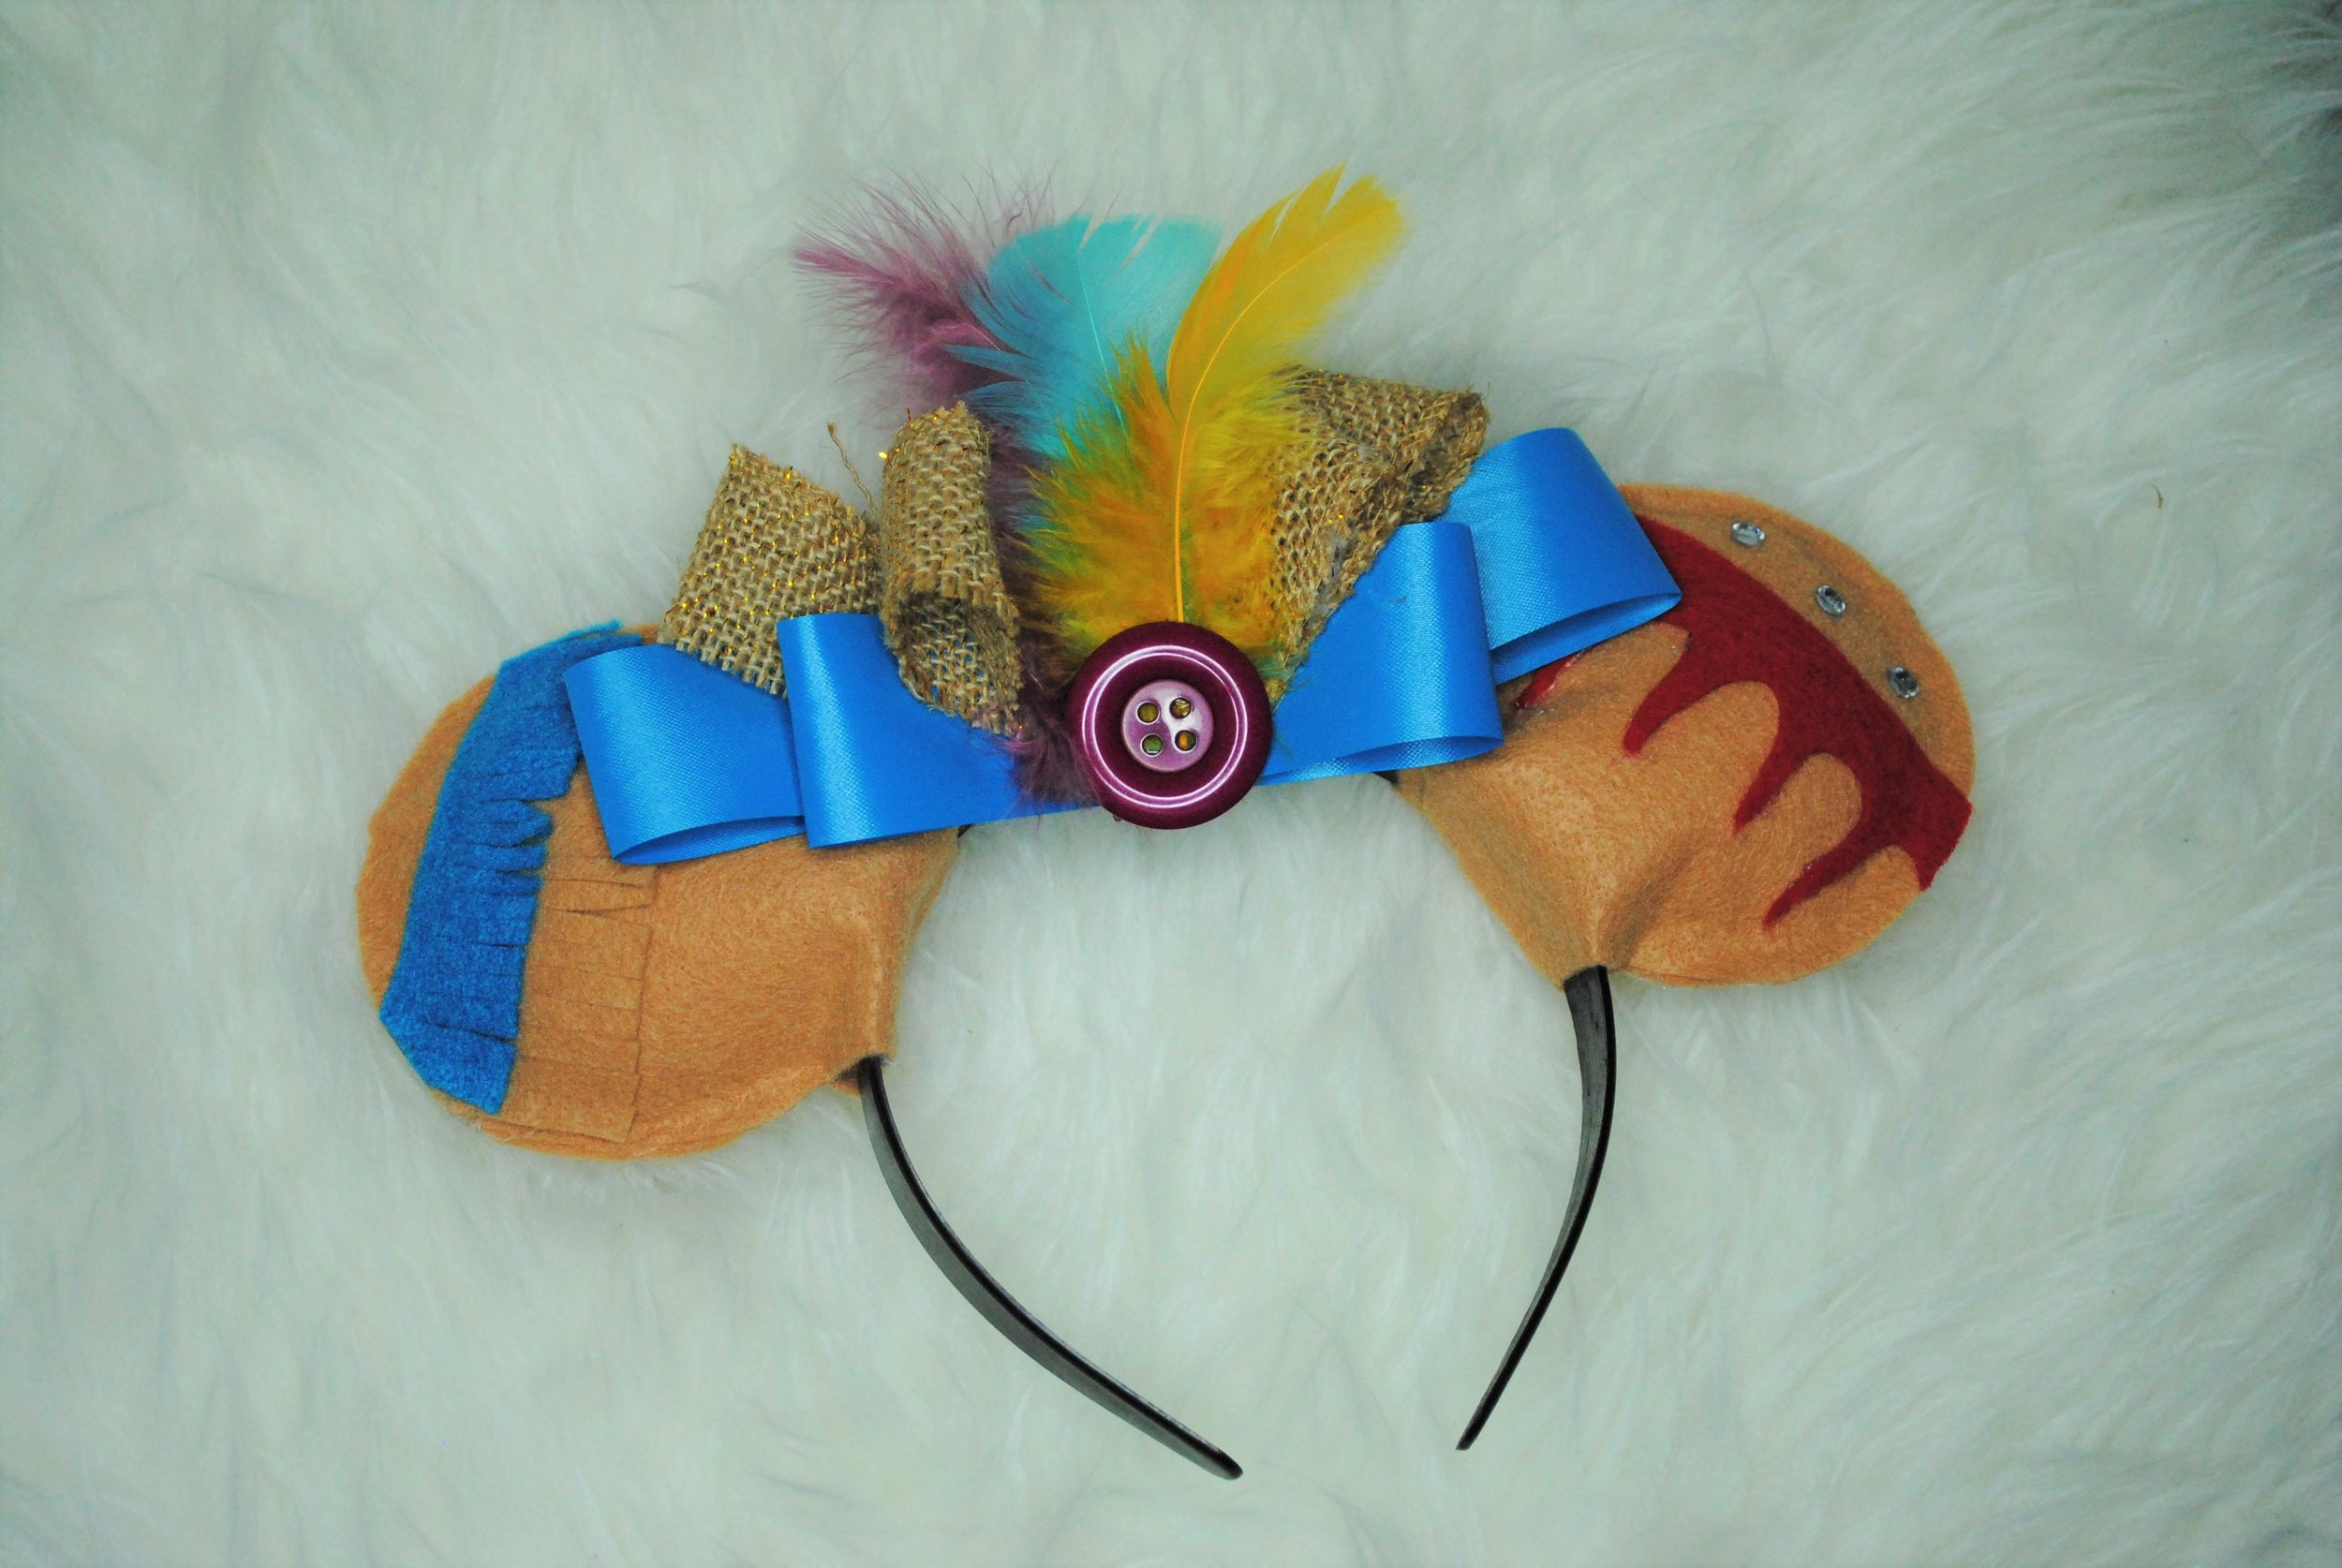 POCAHONTAS EARS! These ears were super avant-garde and flashy, but I think they stayed pretty true to Pocahontas at the same time. I thought adding the burlap to the bow in the center looked really good with the bright feathers, so I'm happy with the way these ones came out!